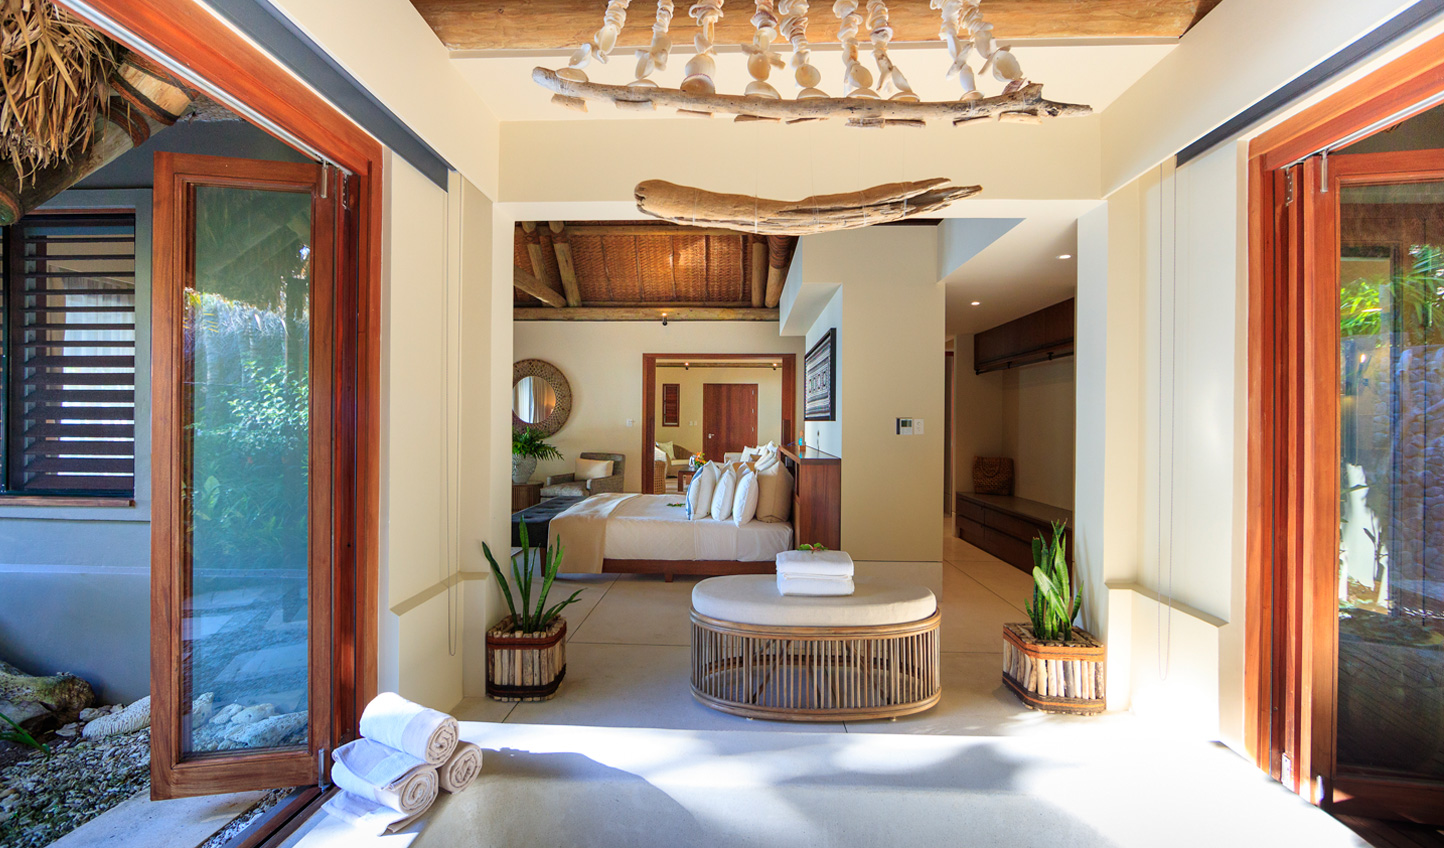 Retreat to your thatched-roof beachfront villa after a day in the sun